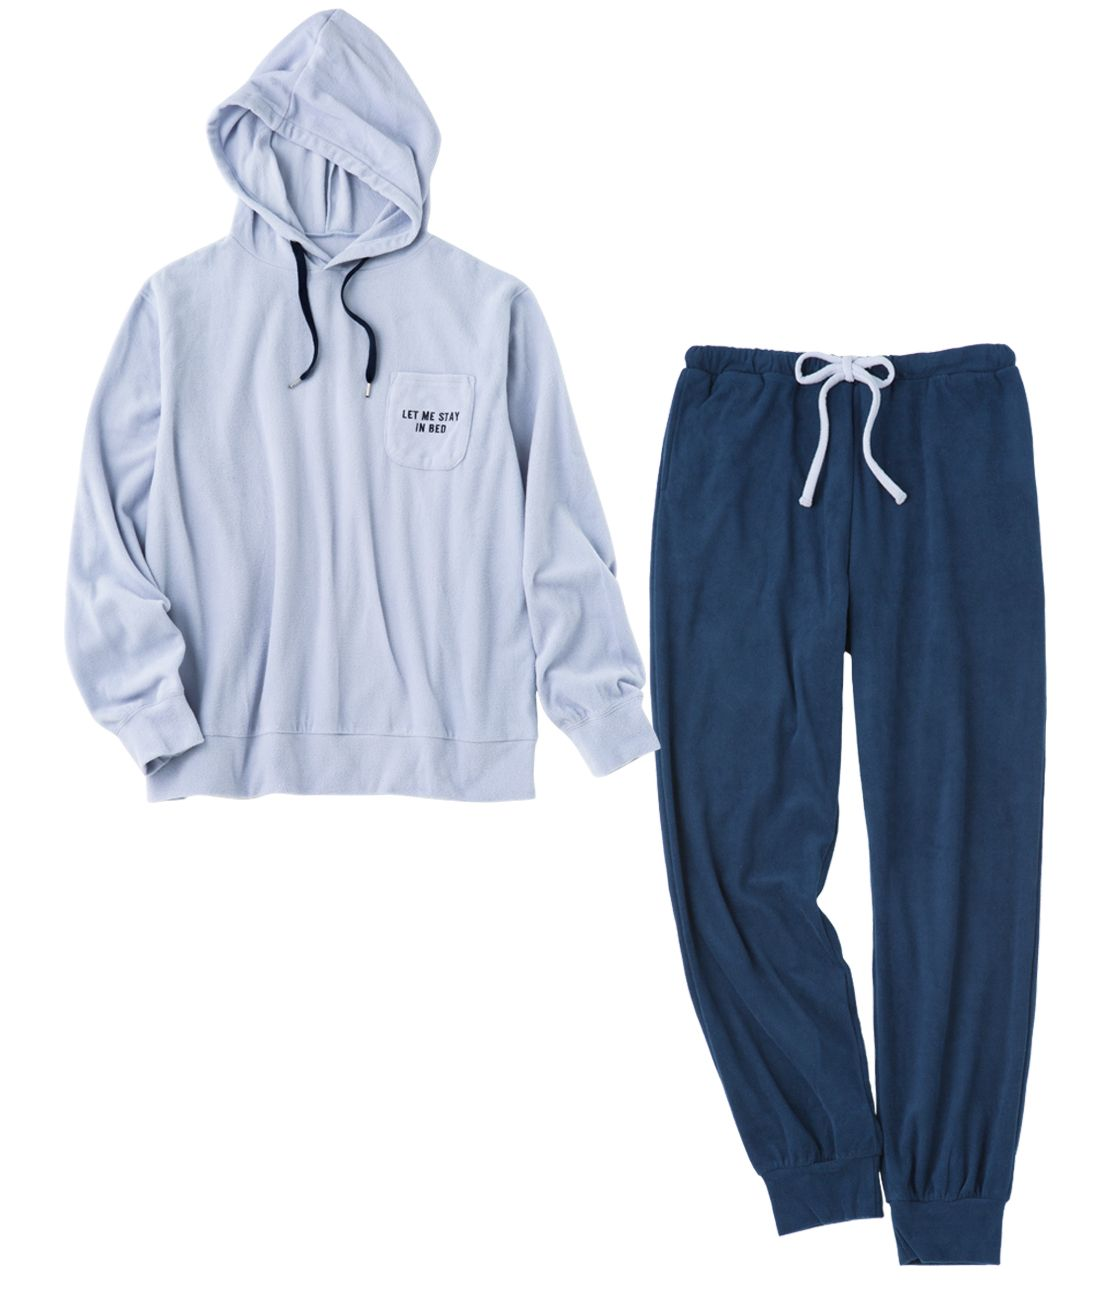 Men's Good Three Pyi fleece pajamas